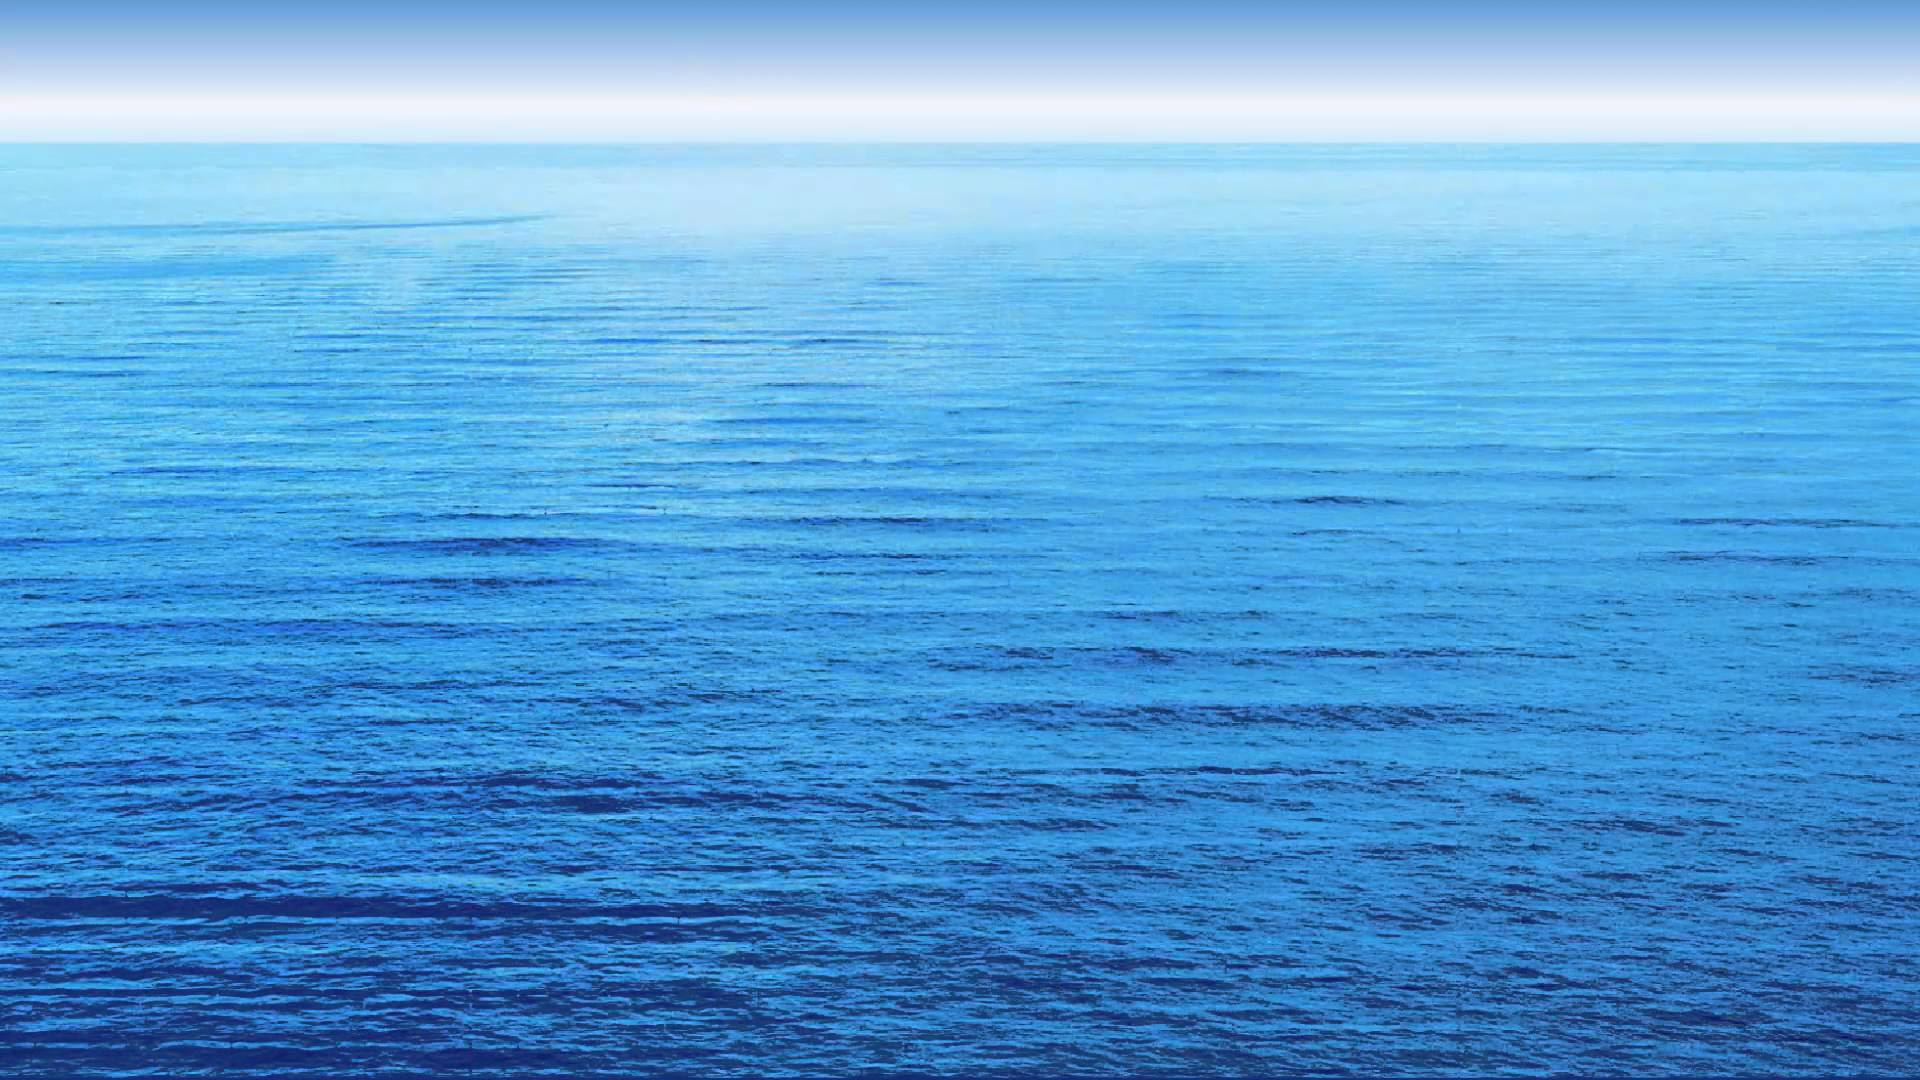 Ocean Background Video Loop 1920x1080